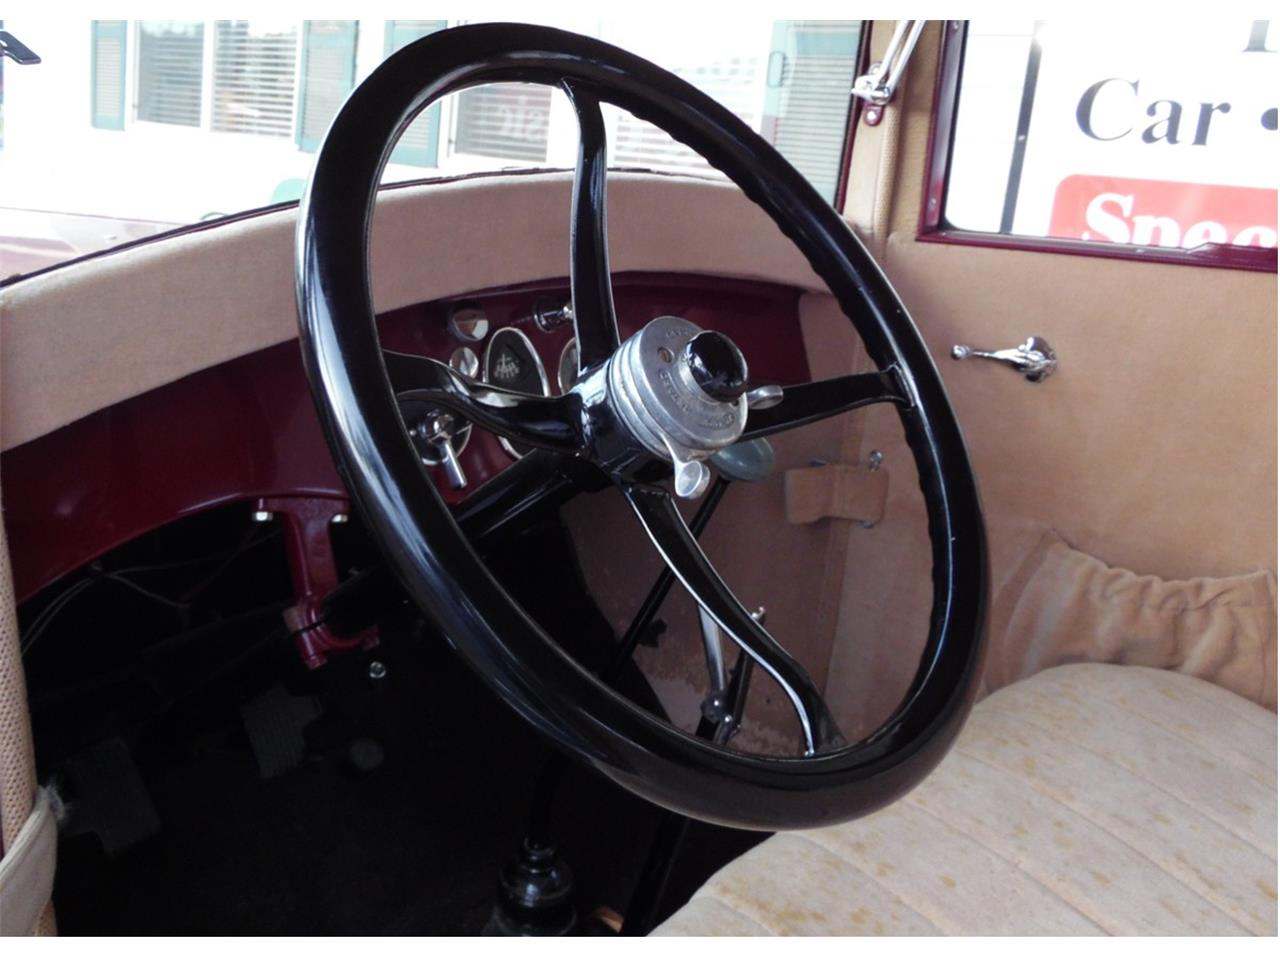 Large Picture of Classic 1925 Willys Sedan located in California - $9,995.00 Offered by Play Toys Classic Cars - MFMK